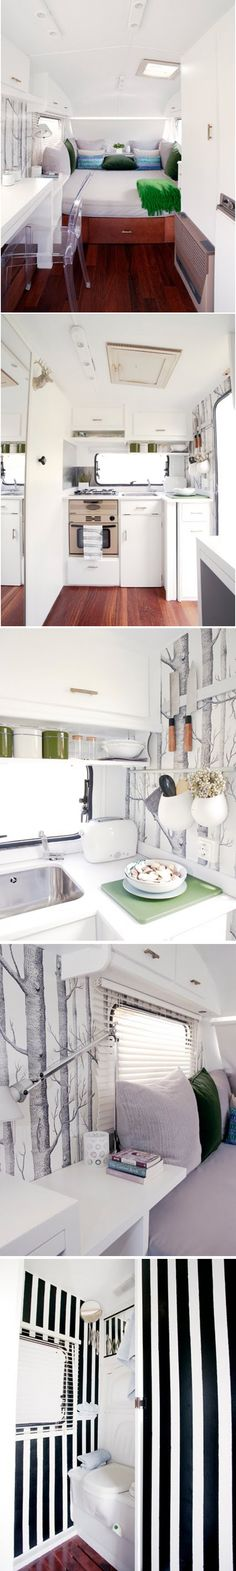 Gypsy Interior Design Dress My Wagon| Serafini Amelia| RV Travel Trailer Design Inspiration-interior of a camper.